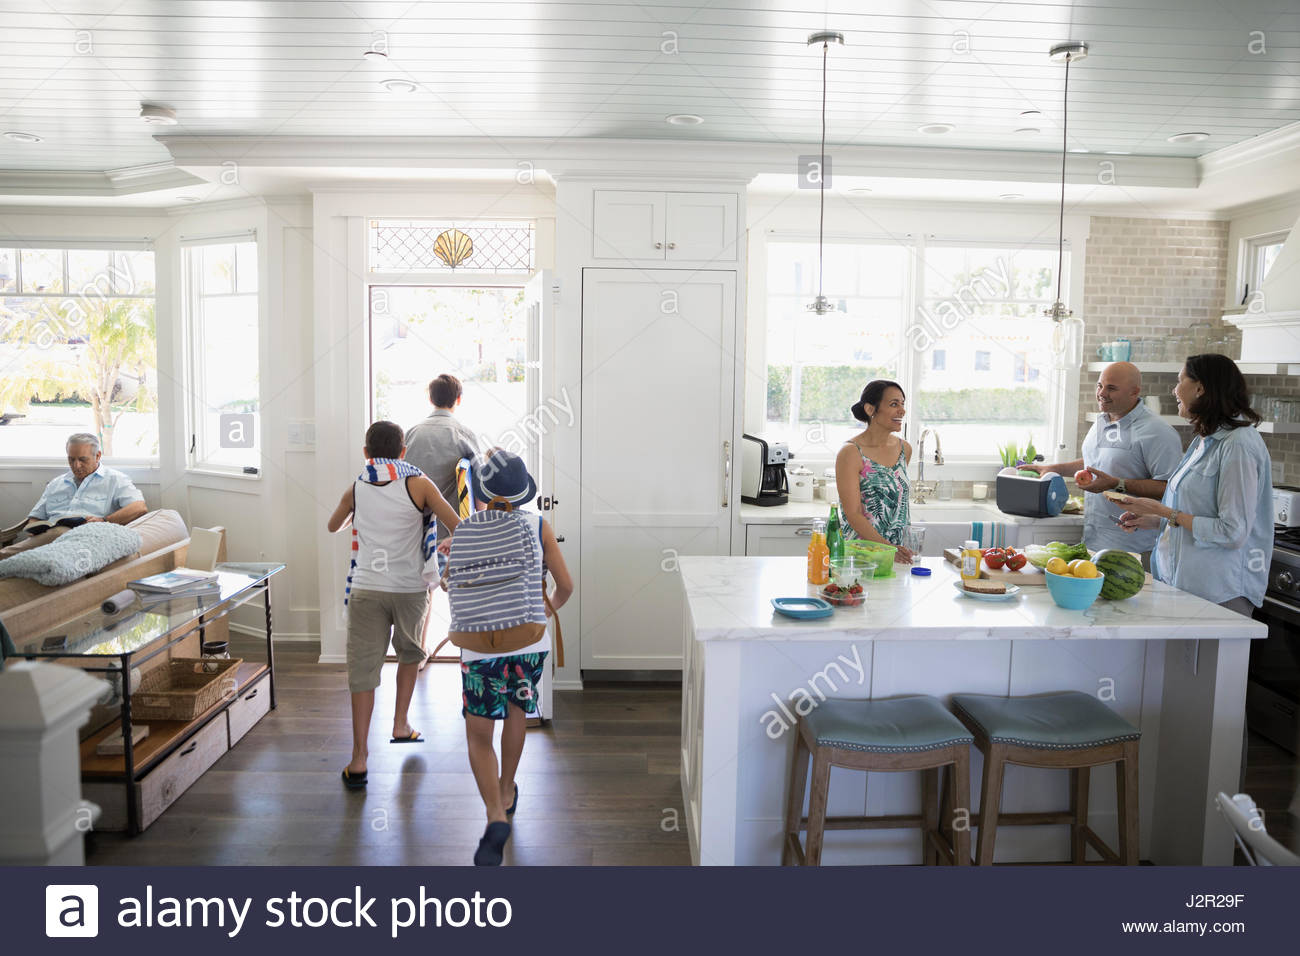 Brothers in swim trunks leaving beach house - Stock Image